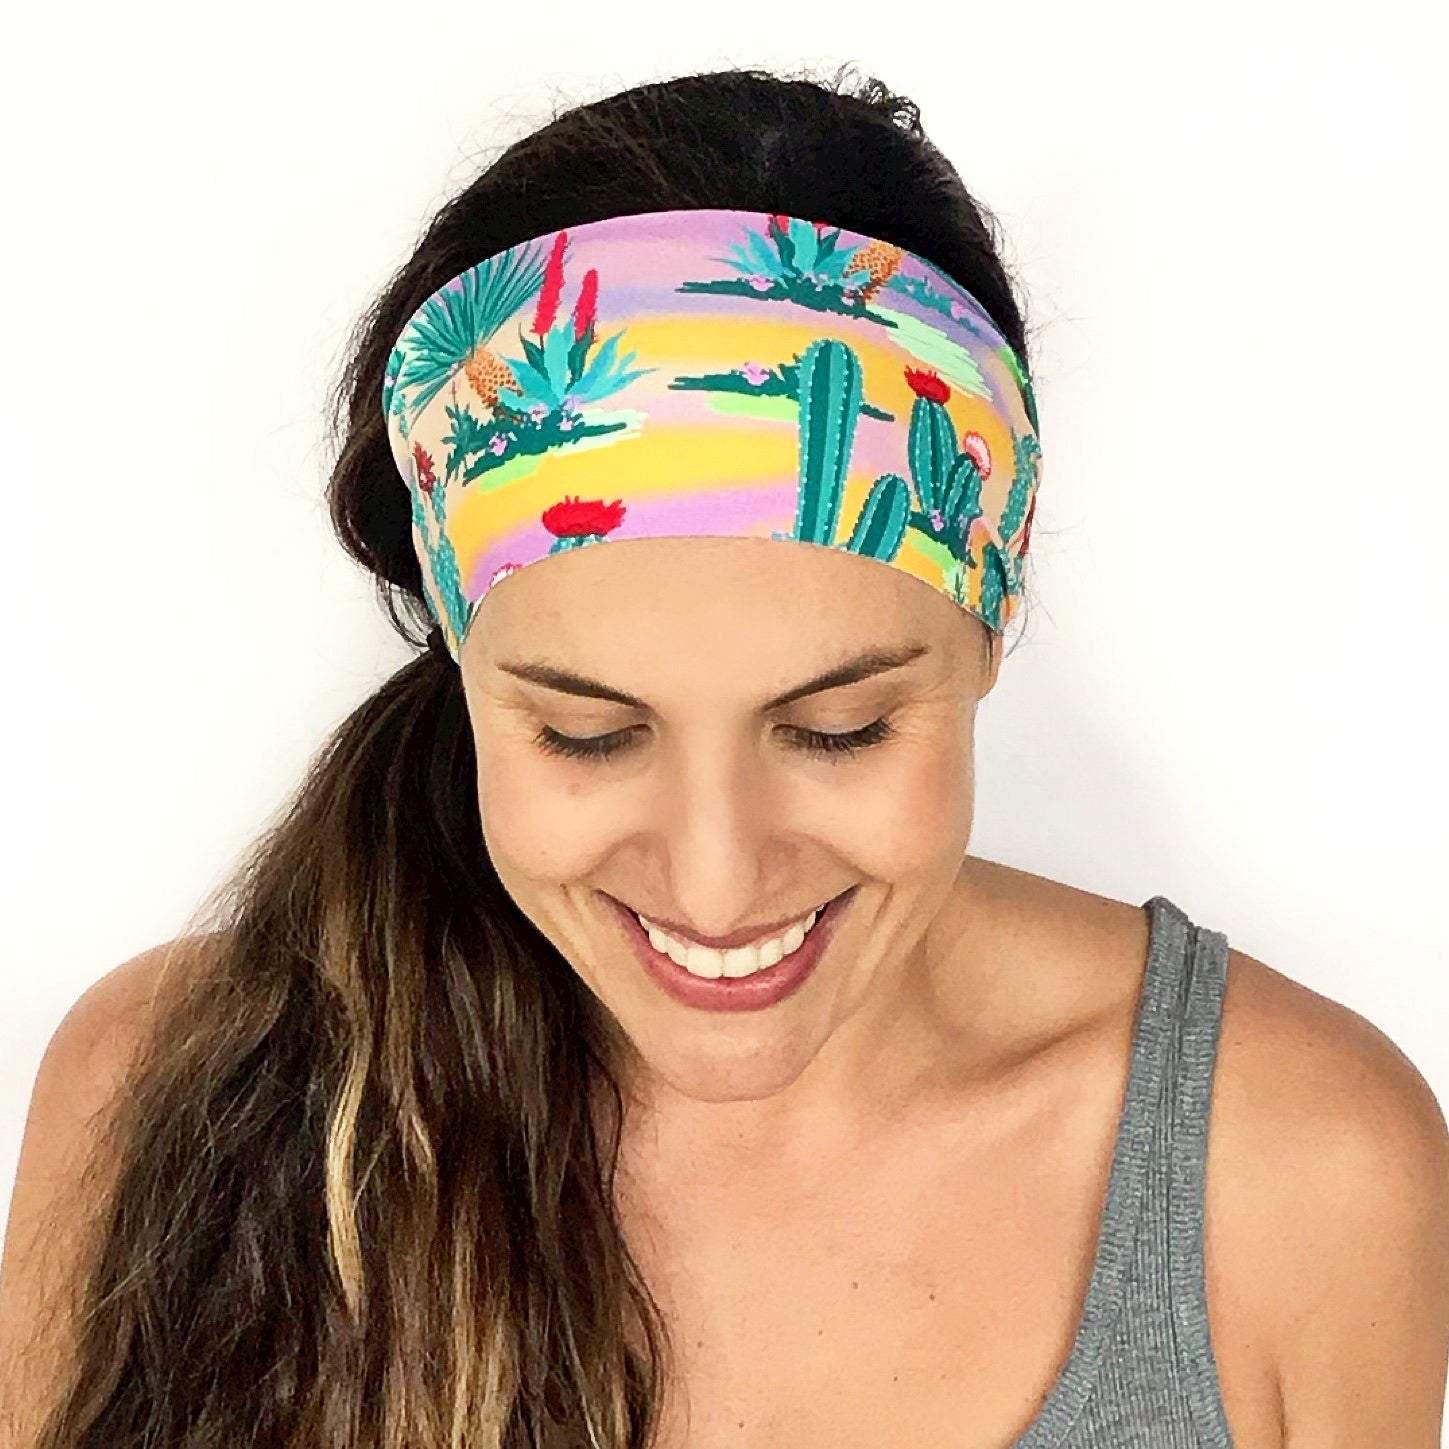 Sahara Workout Headband